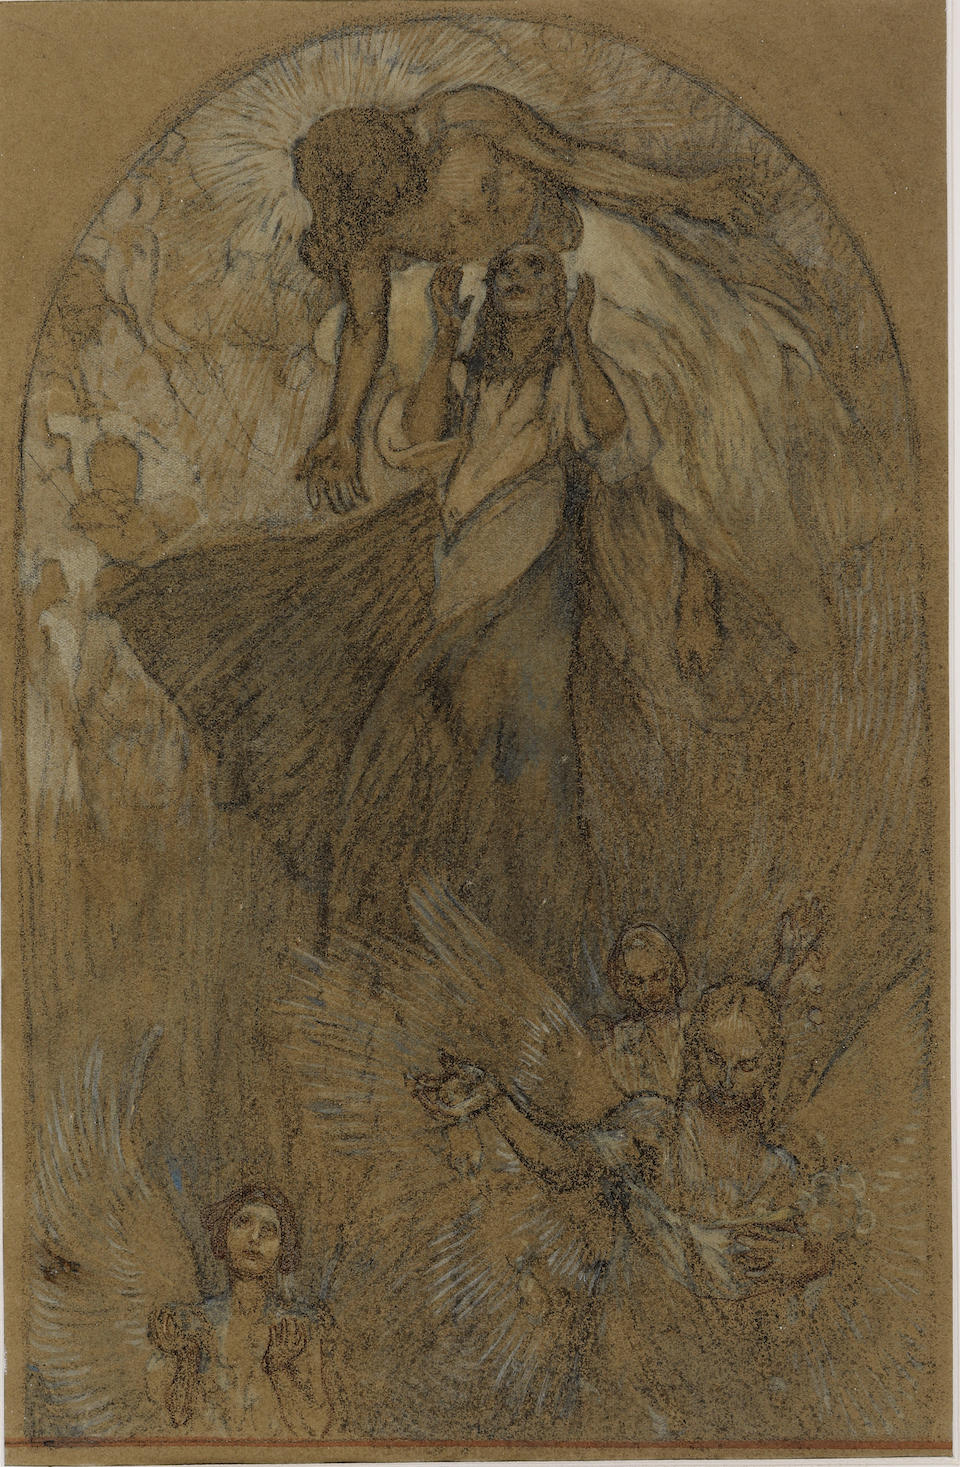 ORIGINAL DRAWING BY ALPHONSE MUCHA. Ascension, design for a mural.